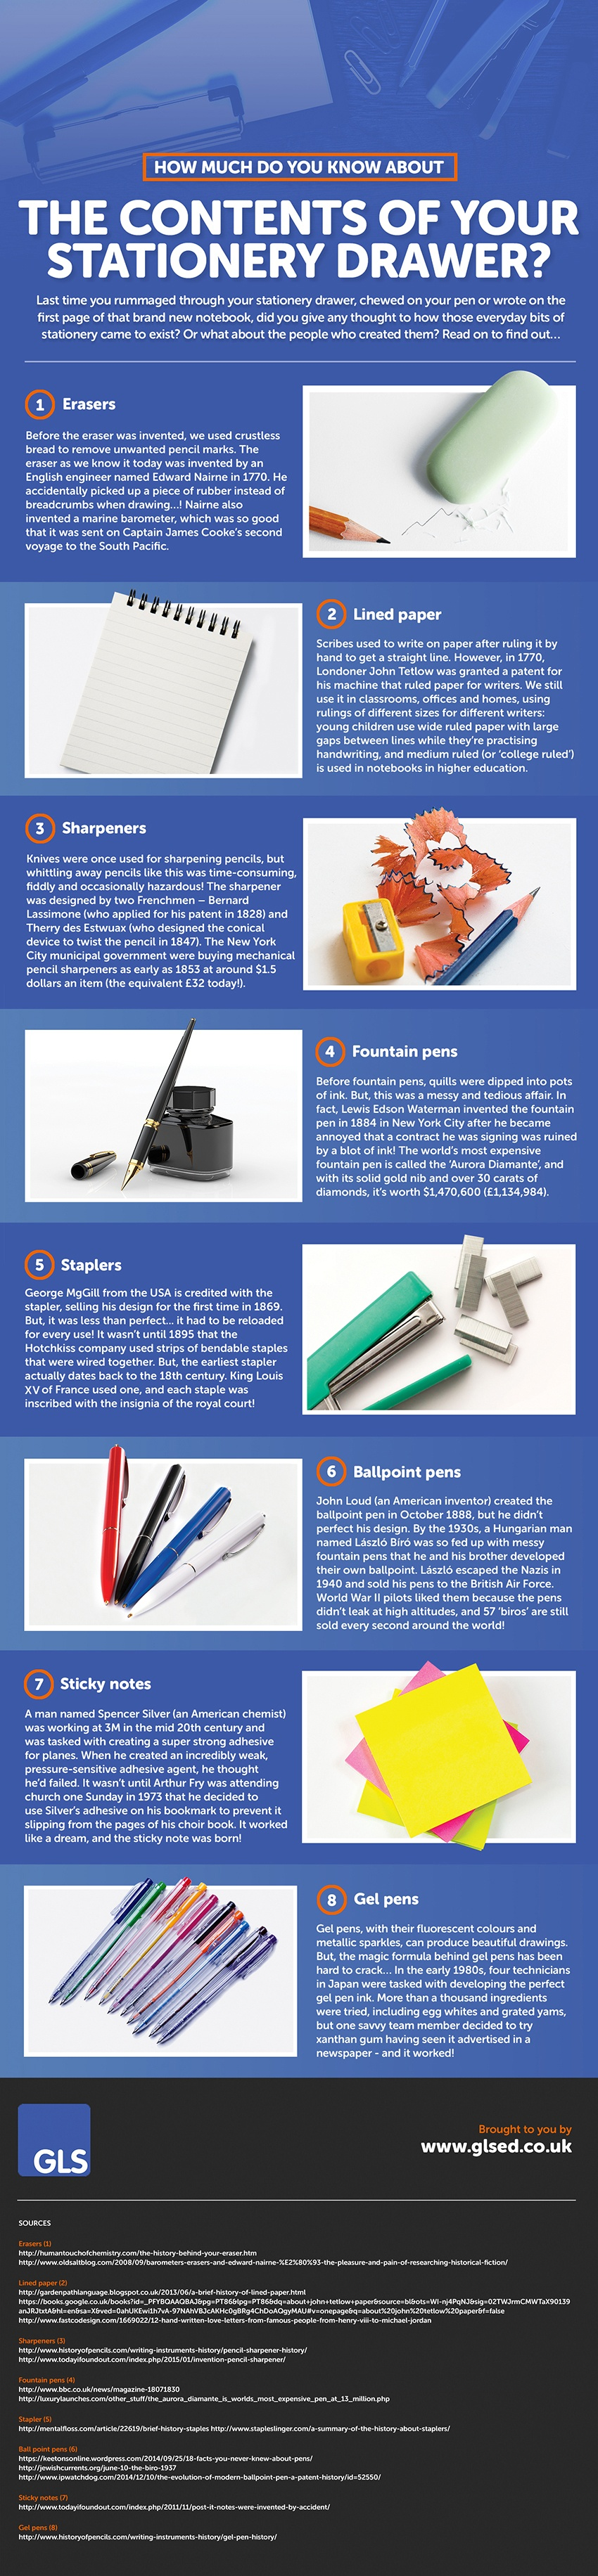 The History Behind Your Classroom Essentials Infographic